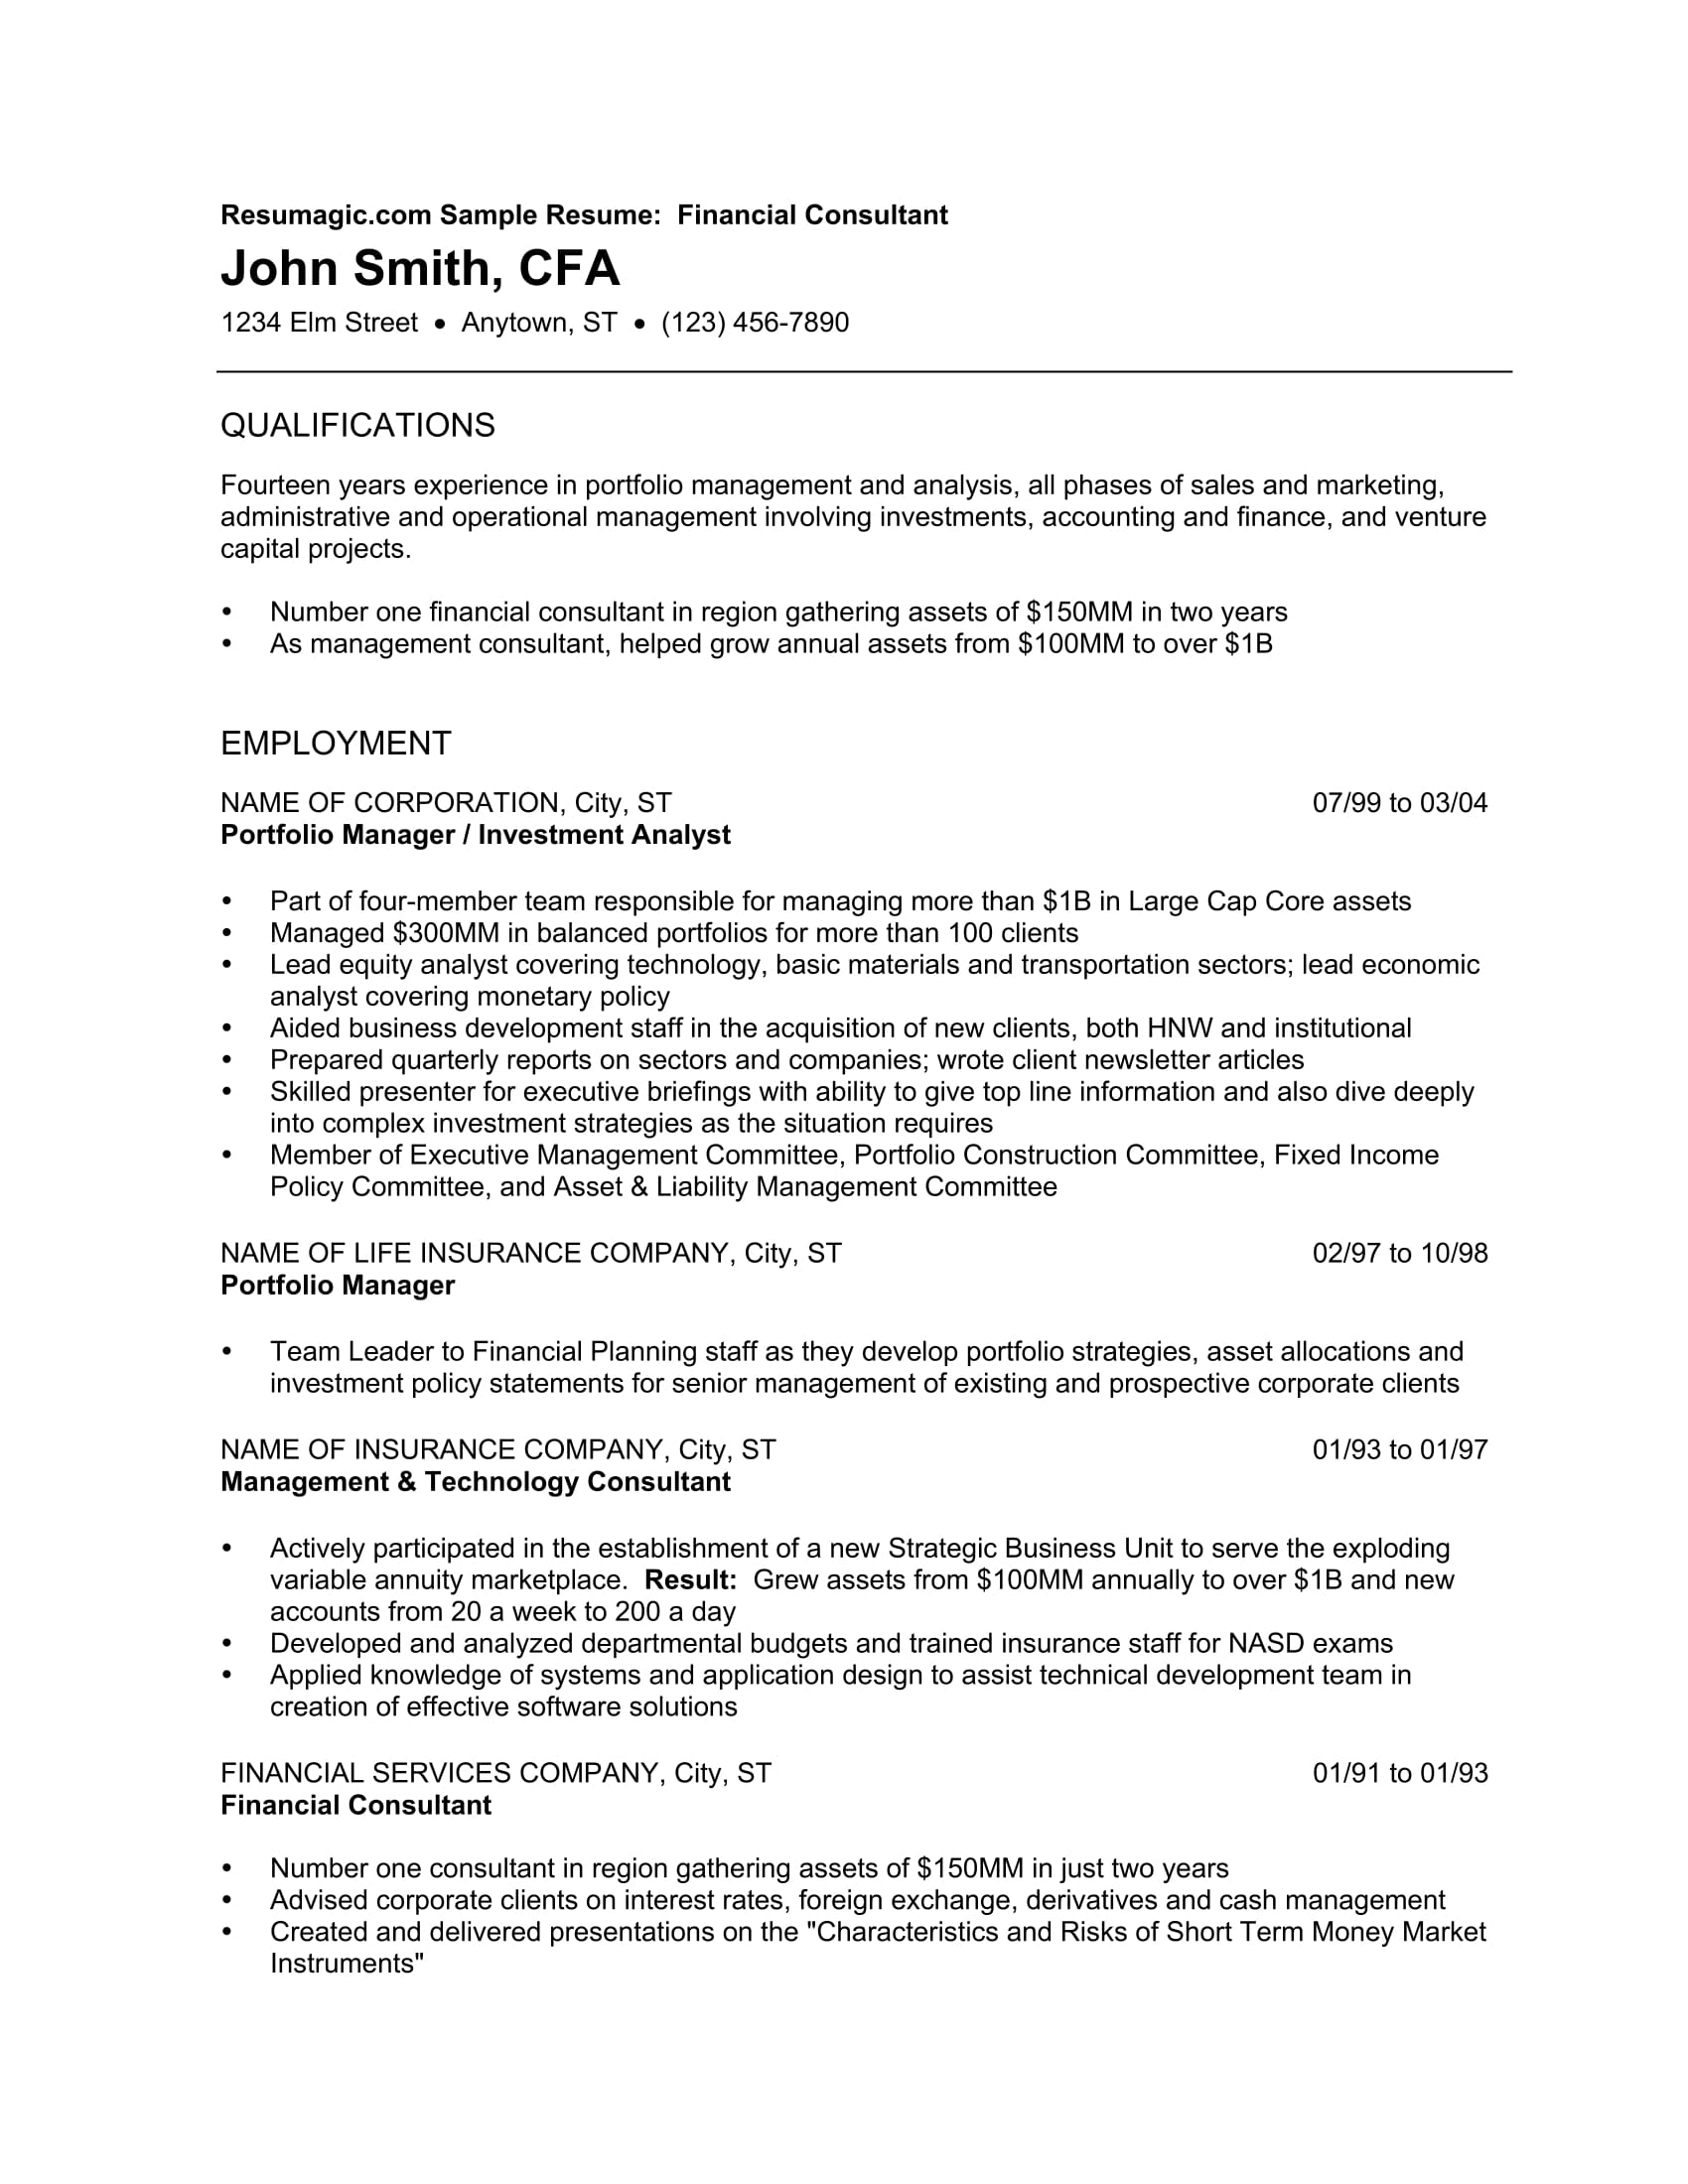 Mba Finance Resume Free Download 24 Best Finance Resume Sample Templates Wisestep